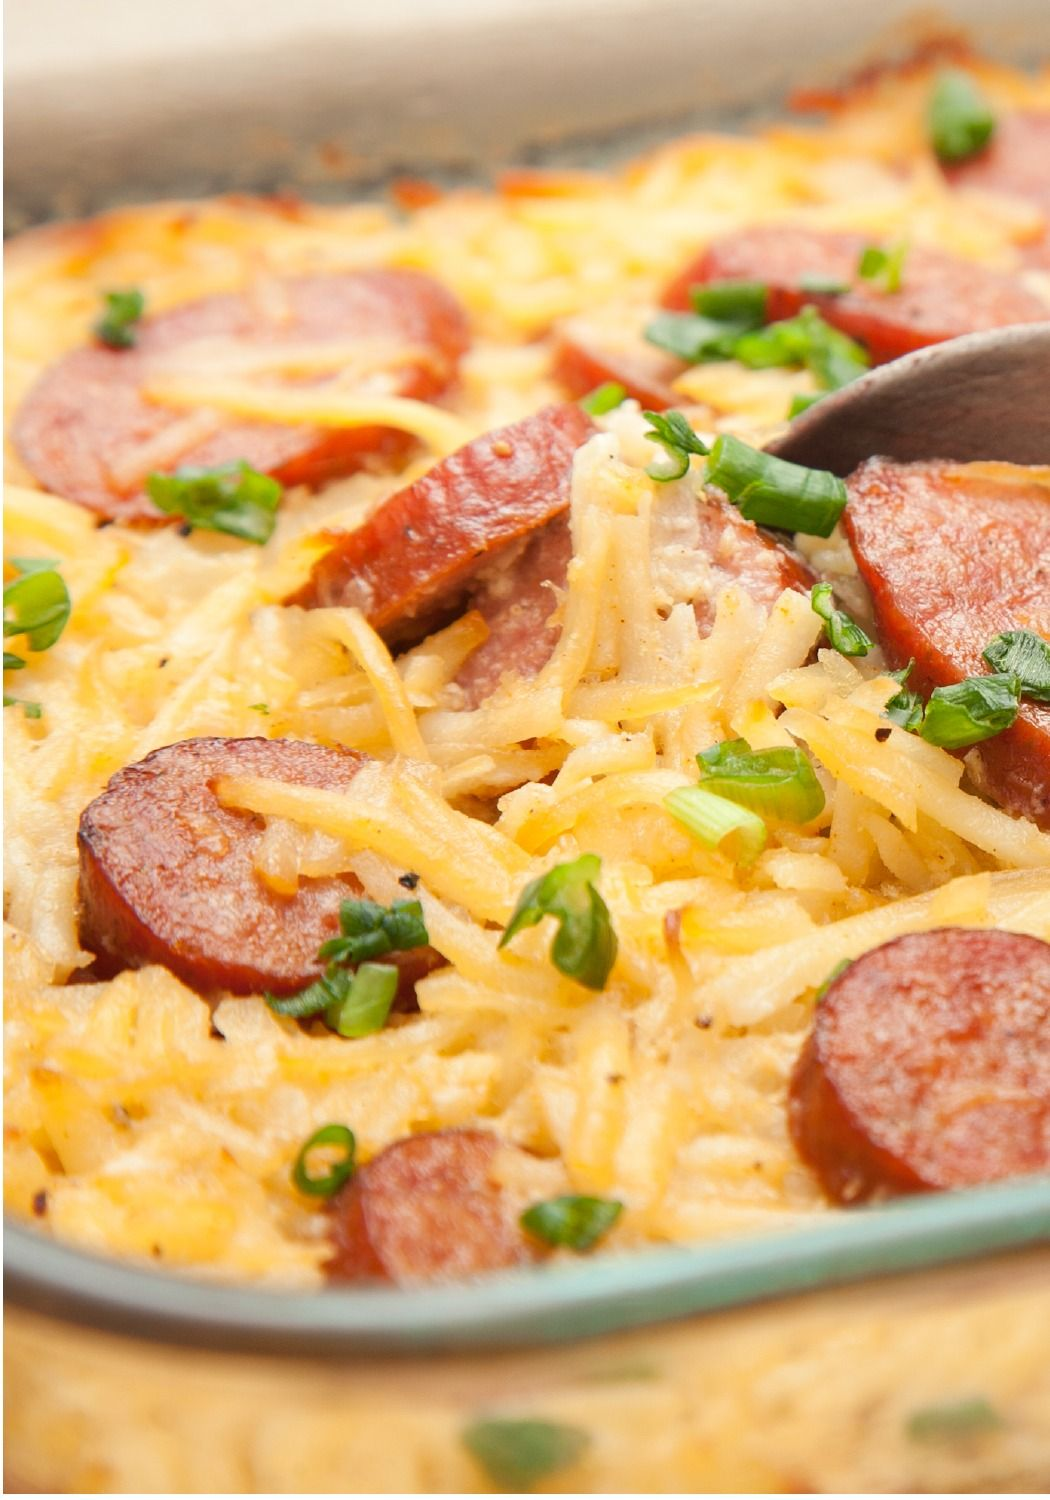 Sausage Potato Casserole This Recipe Is A Crowd Pleasing Classic That Takes Only 20 Minutes To